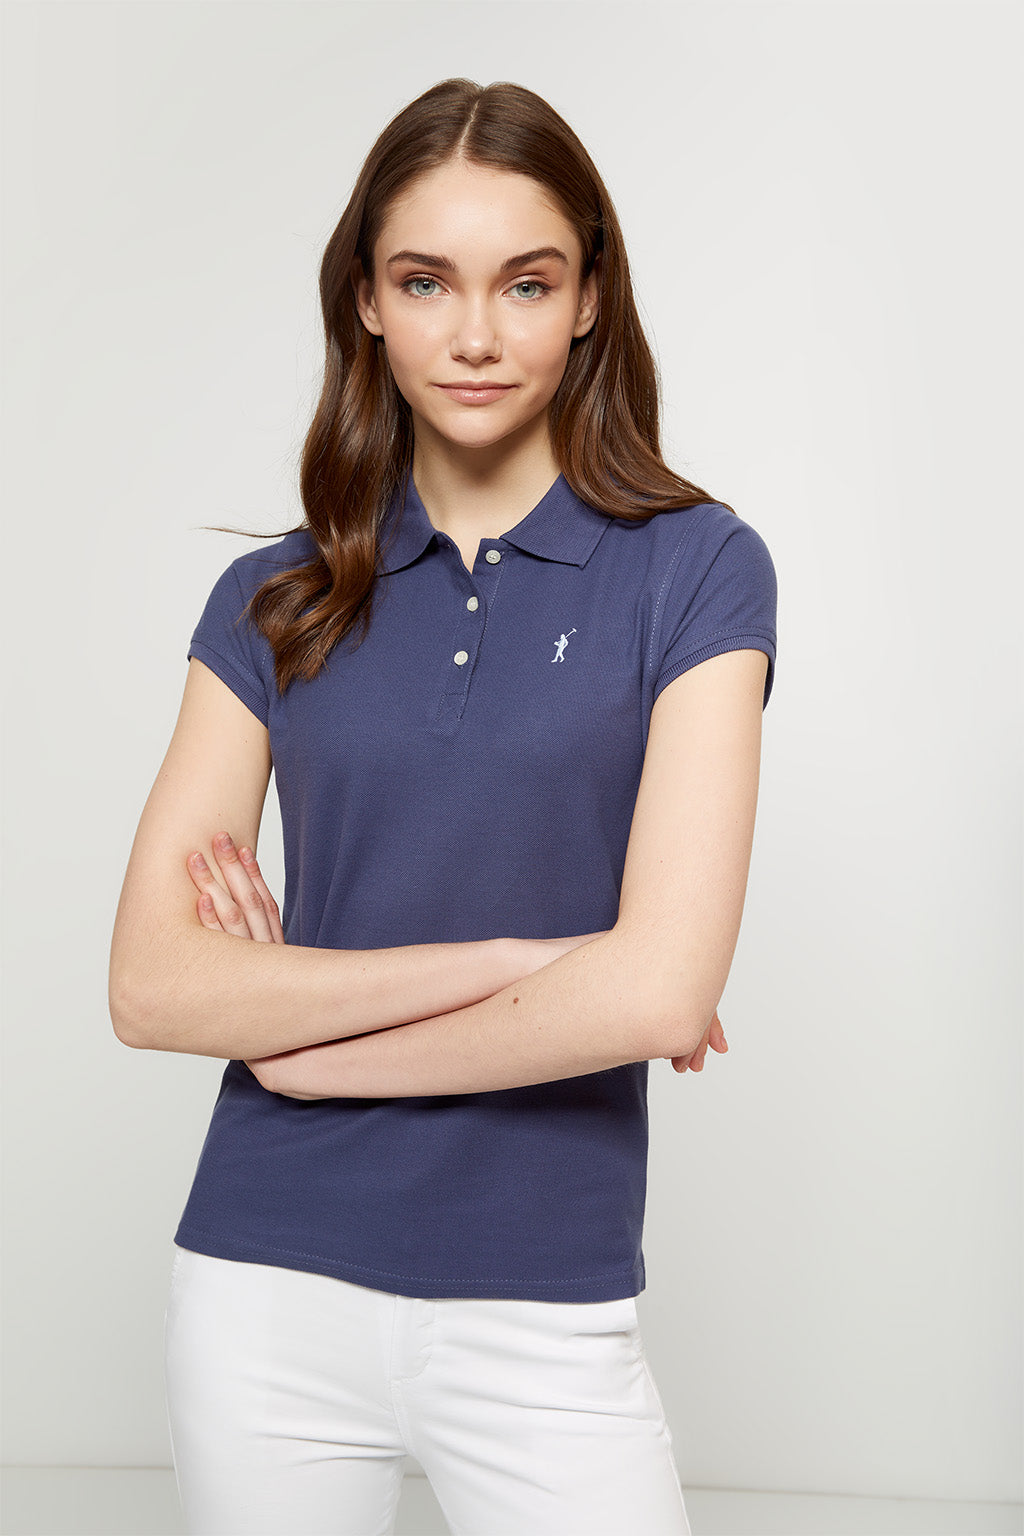 Denim blue polo shirt with embroidered logo